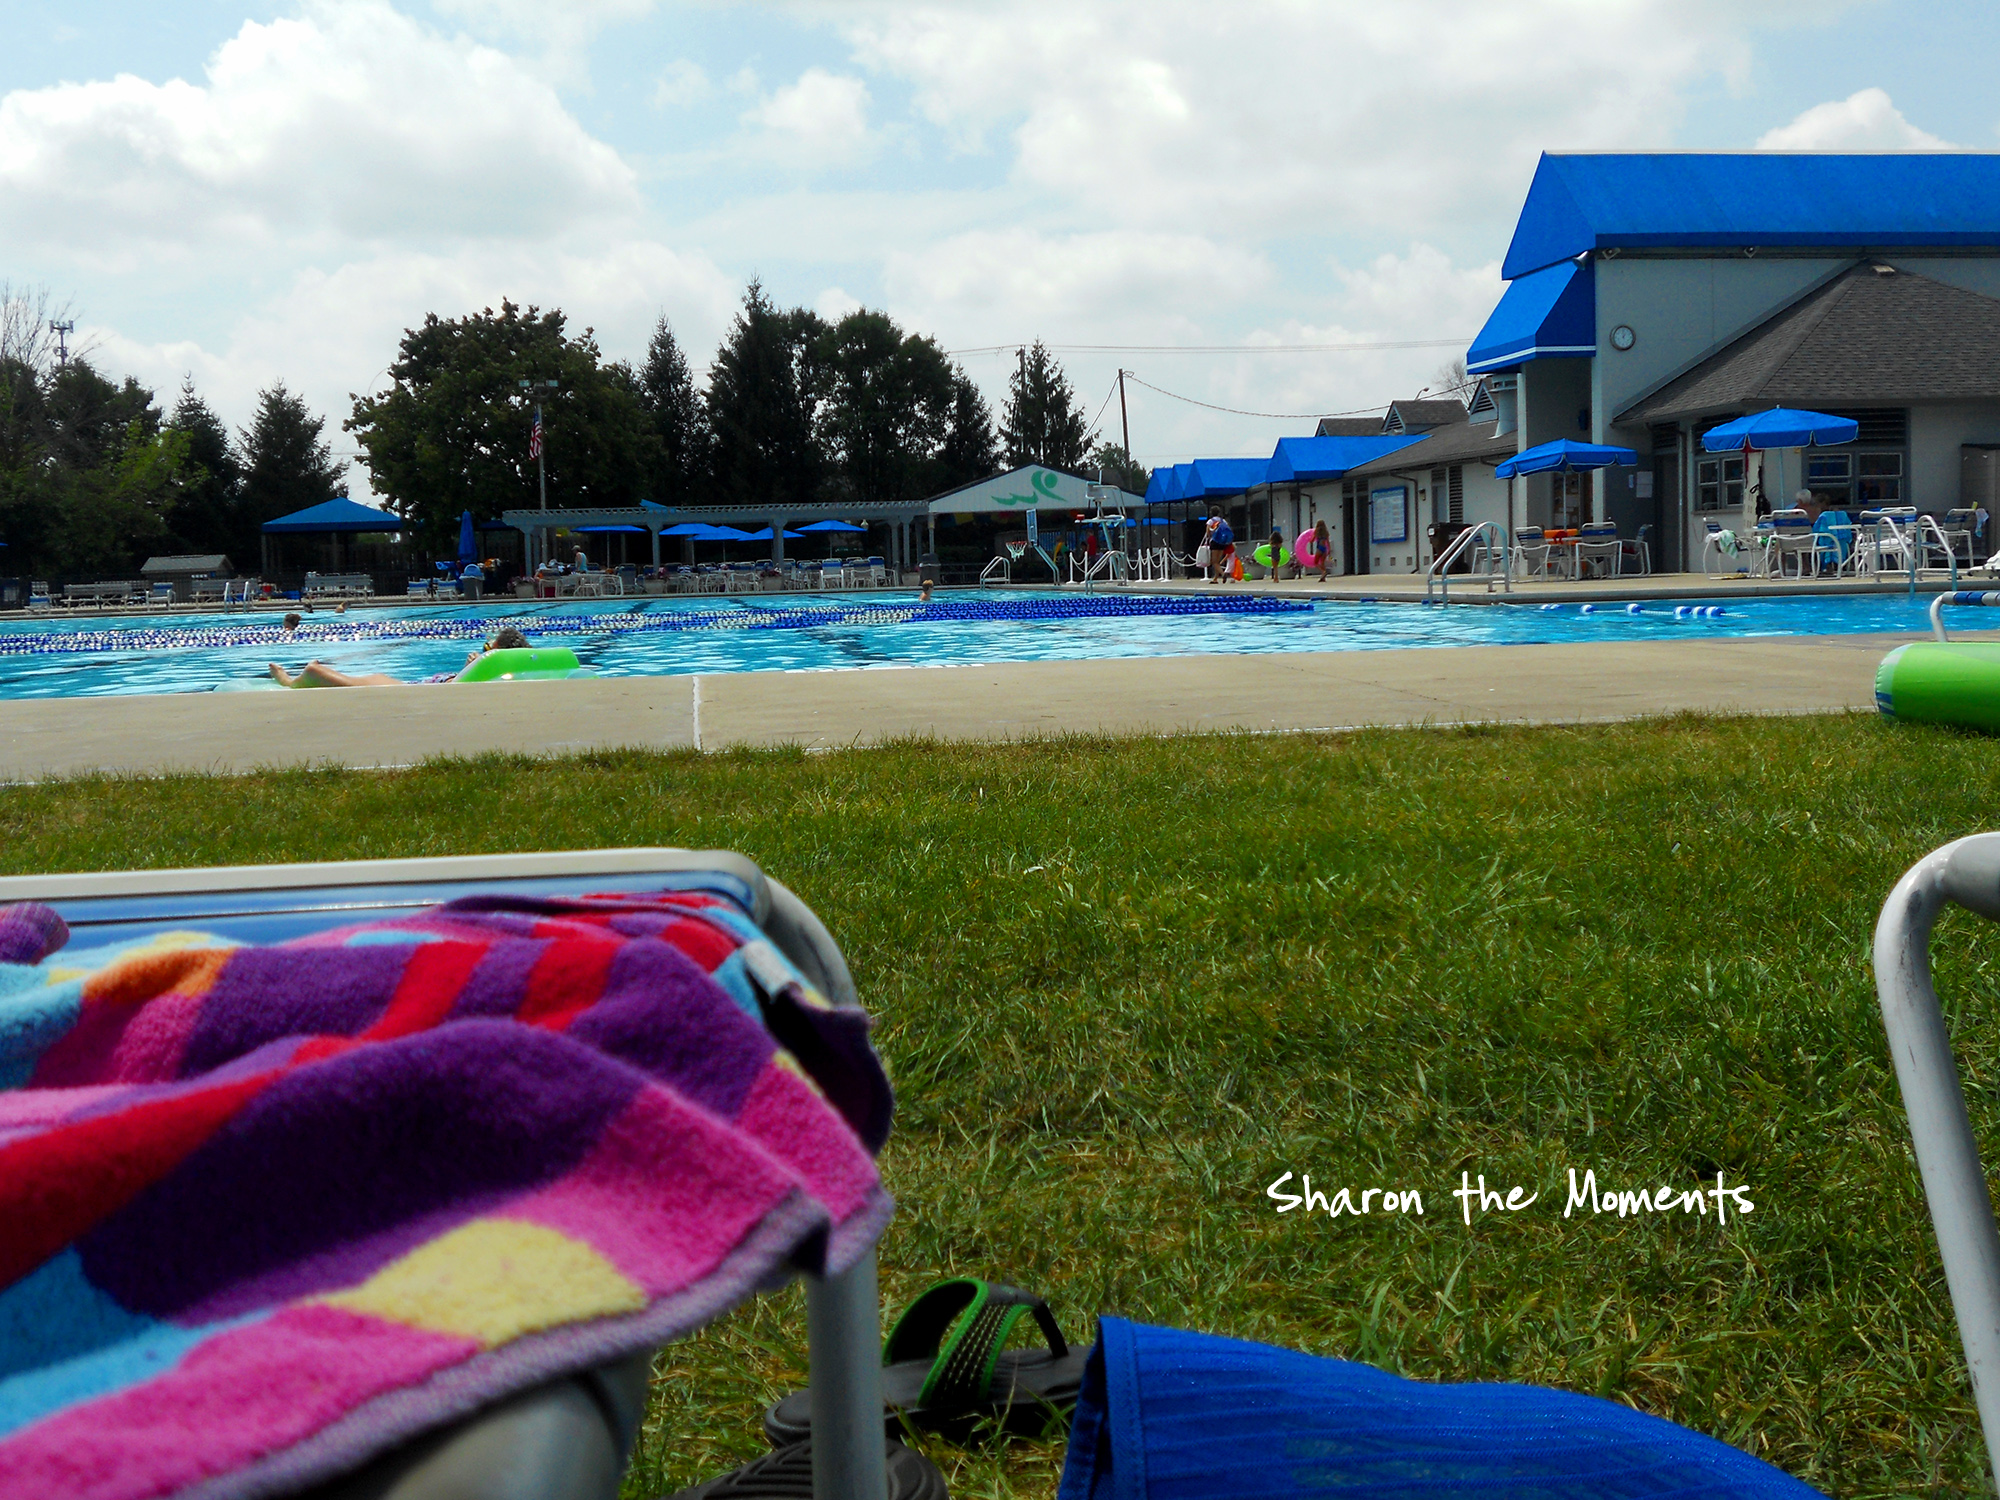 Enjoying Hot Summer Day at the Pool|Sharon the Moments blog